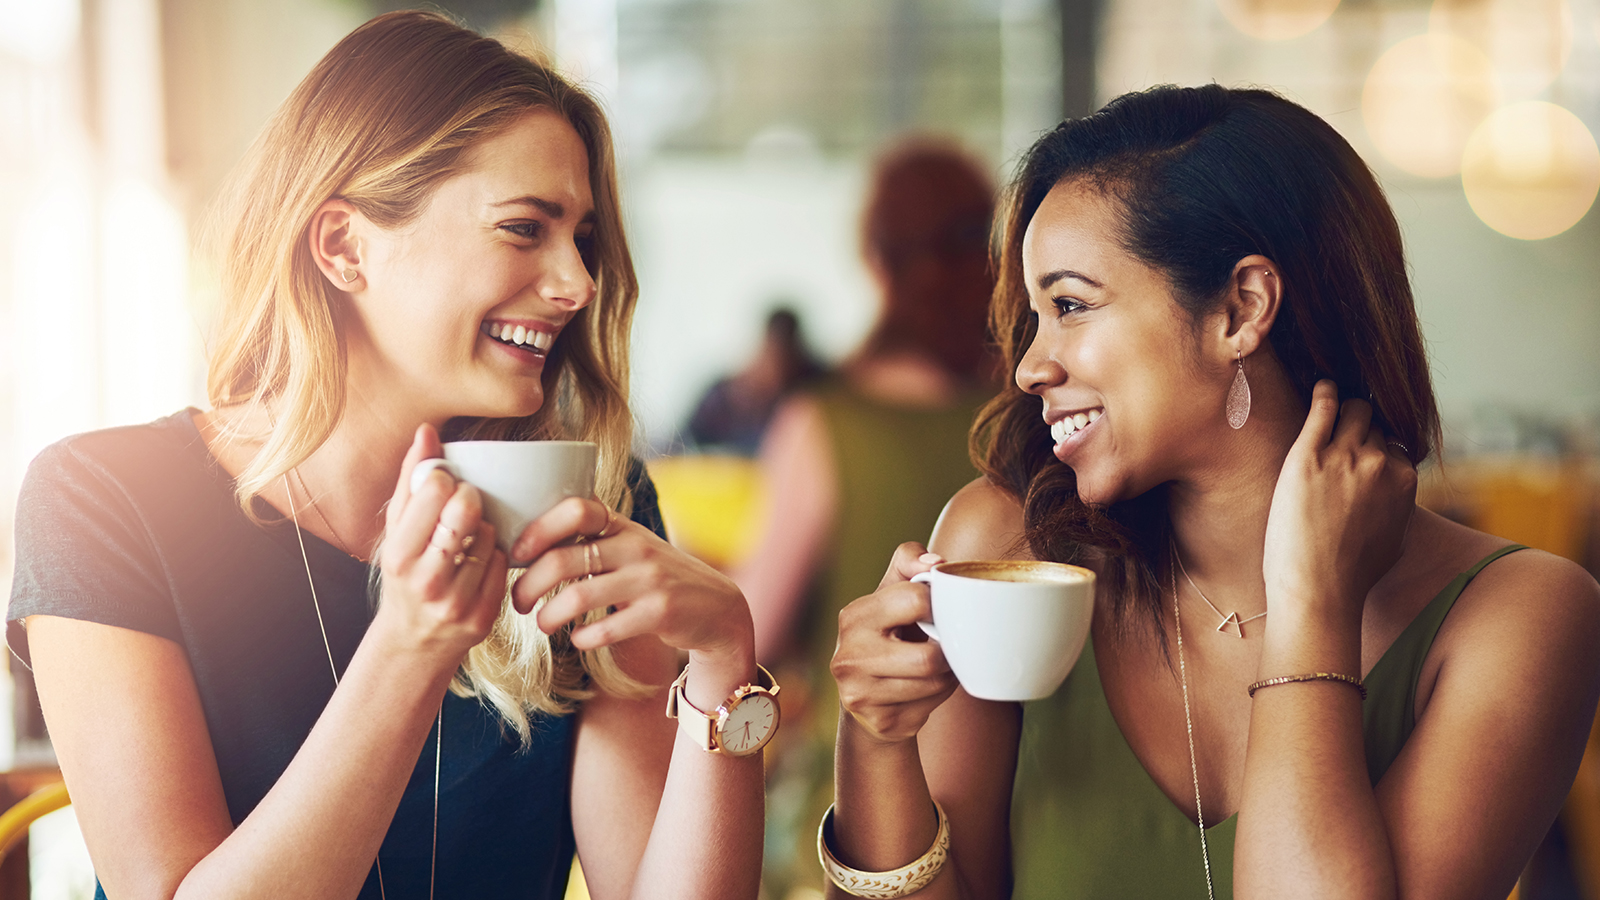 39 questions to make small talk with anyone